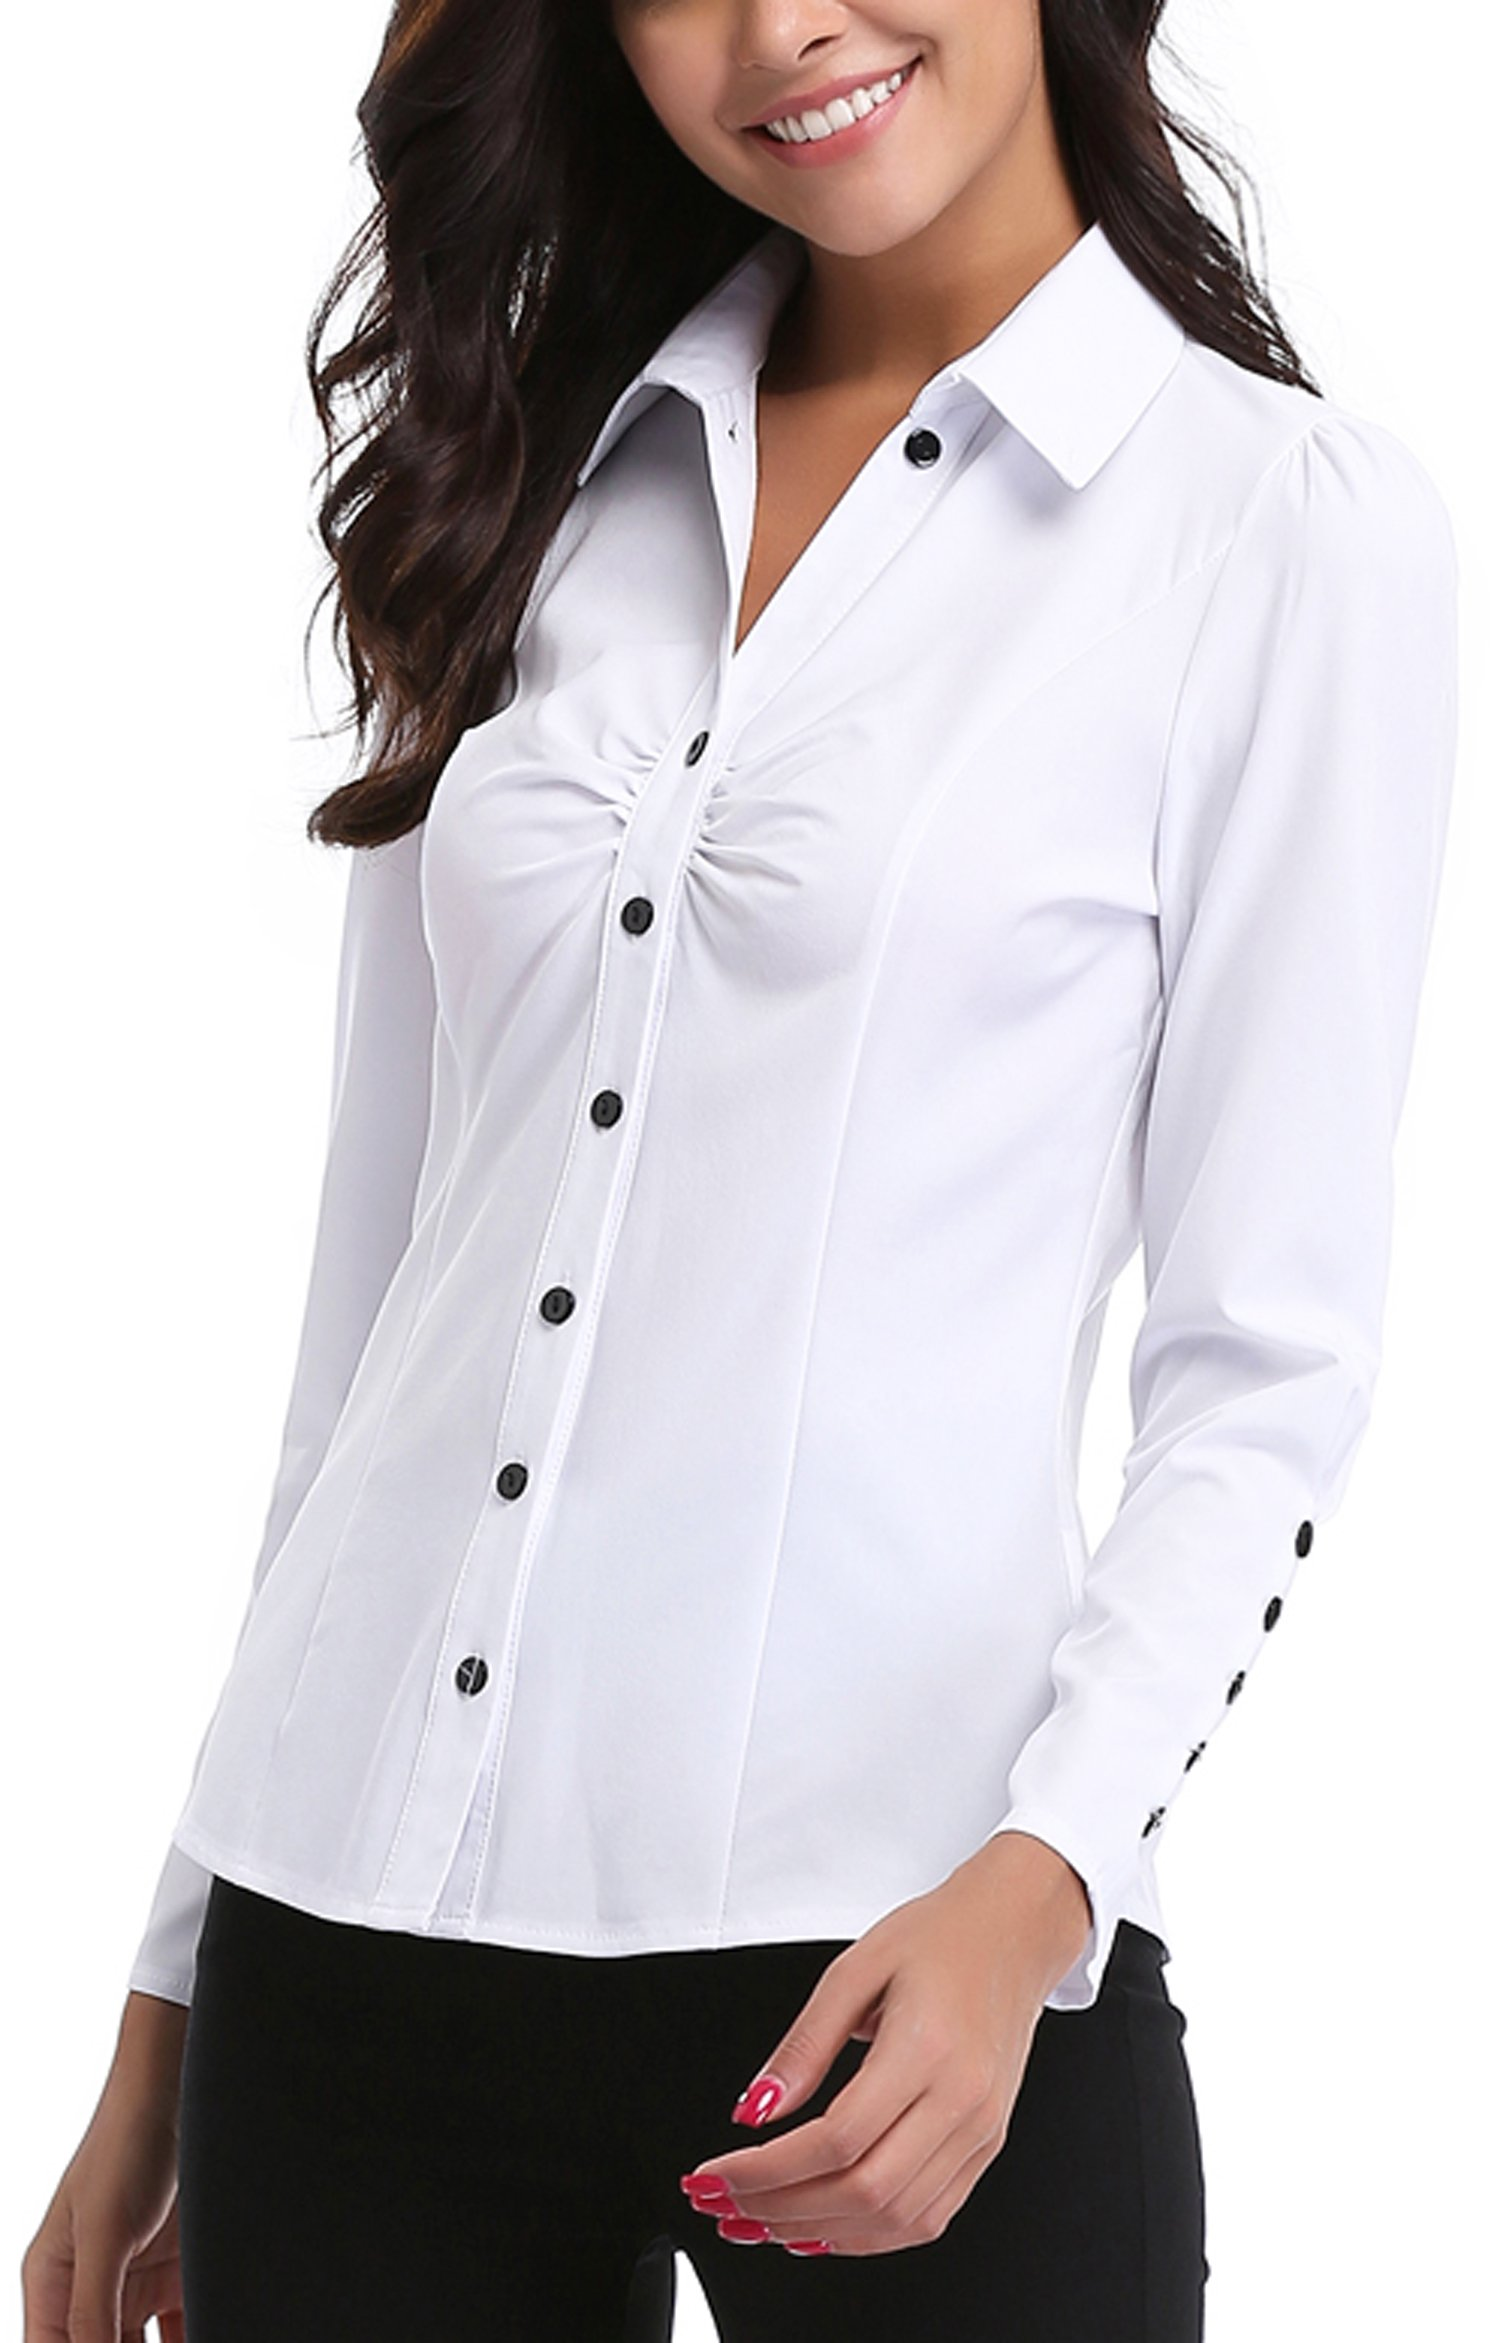 MISS MOLY Women's White Button Down Shirt V Neck Collar Puff Sleeve Office M by MISS MOLY (Image #3)